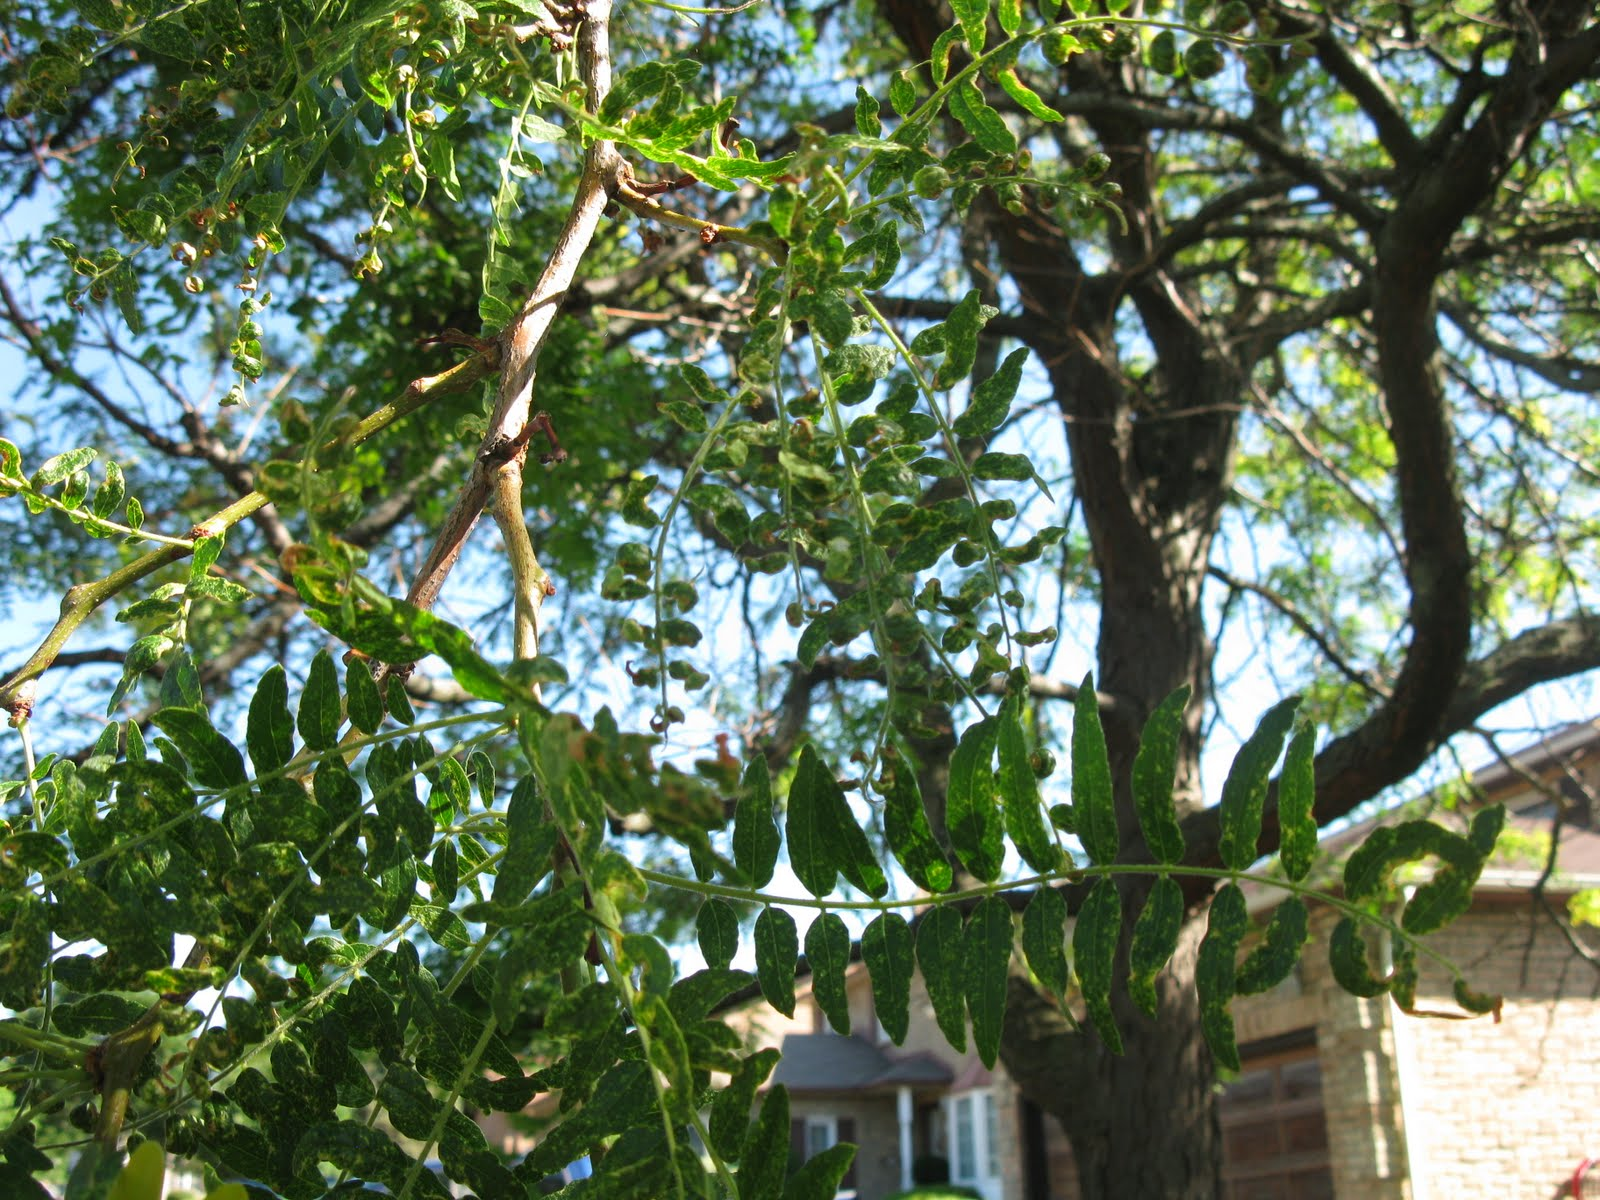 White Swan Homes and Gardens Honey Locust Plant Bugs and Leaf Hoppers